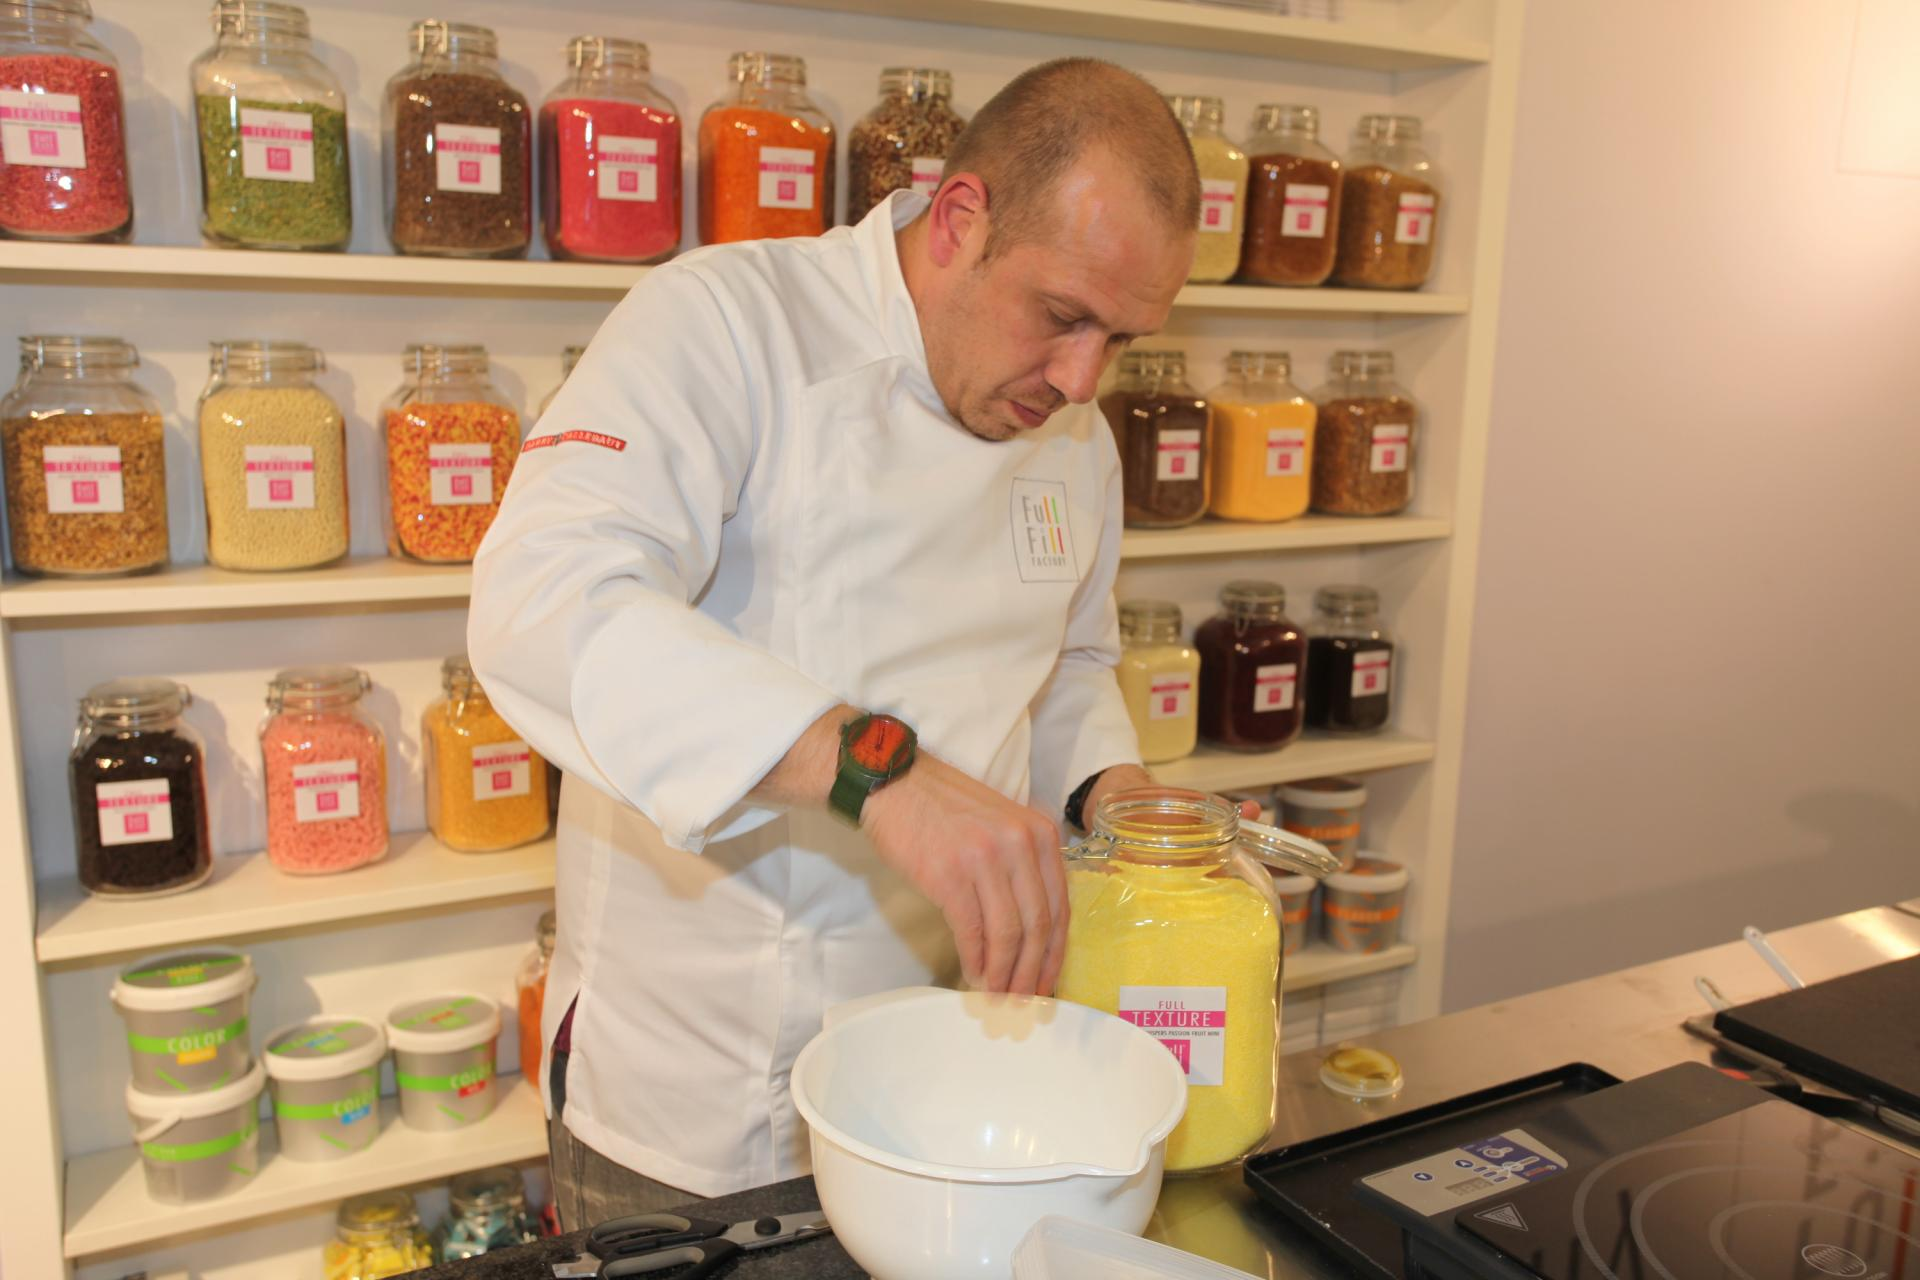 Jurgen Koens, Chef at Barry Callebaut's iLab in Zundert (NL)